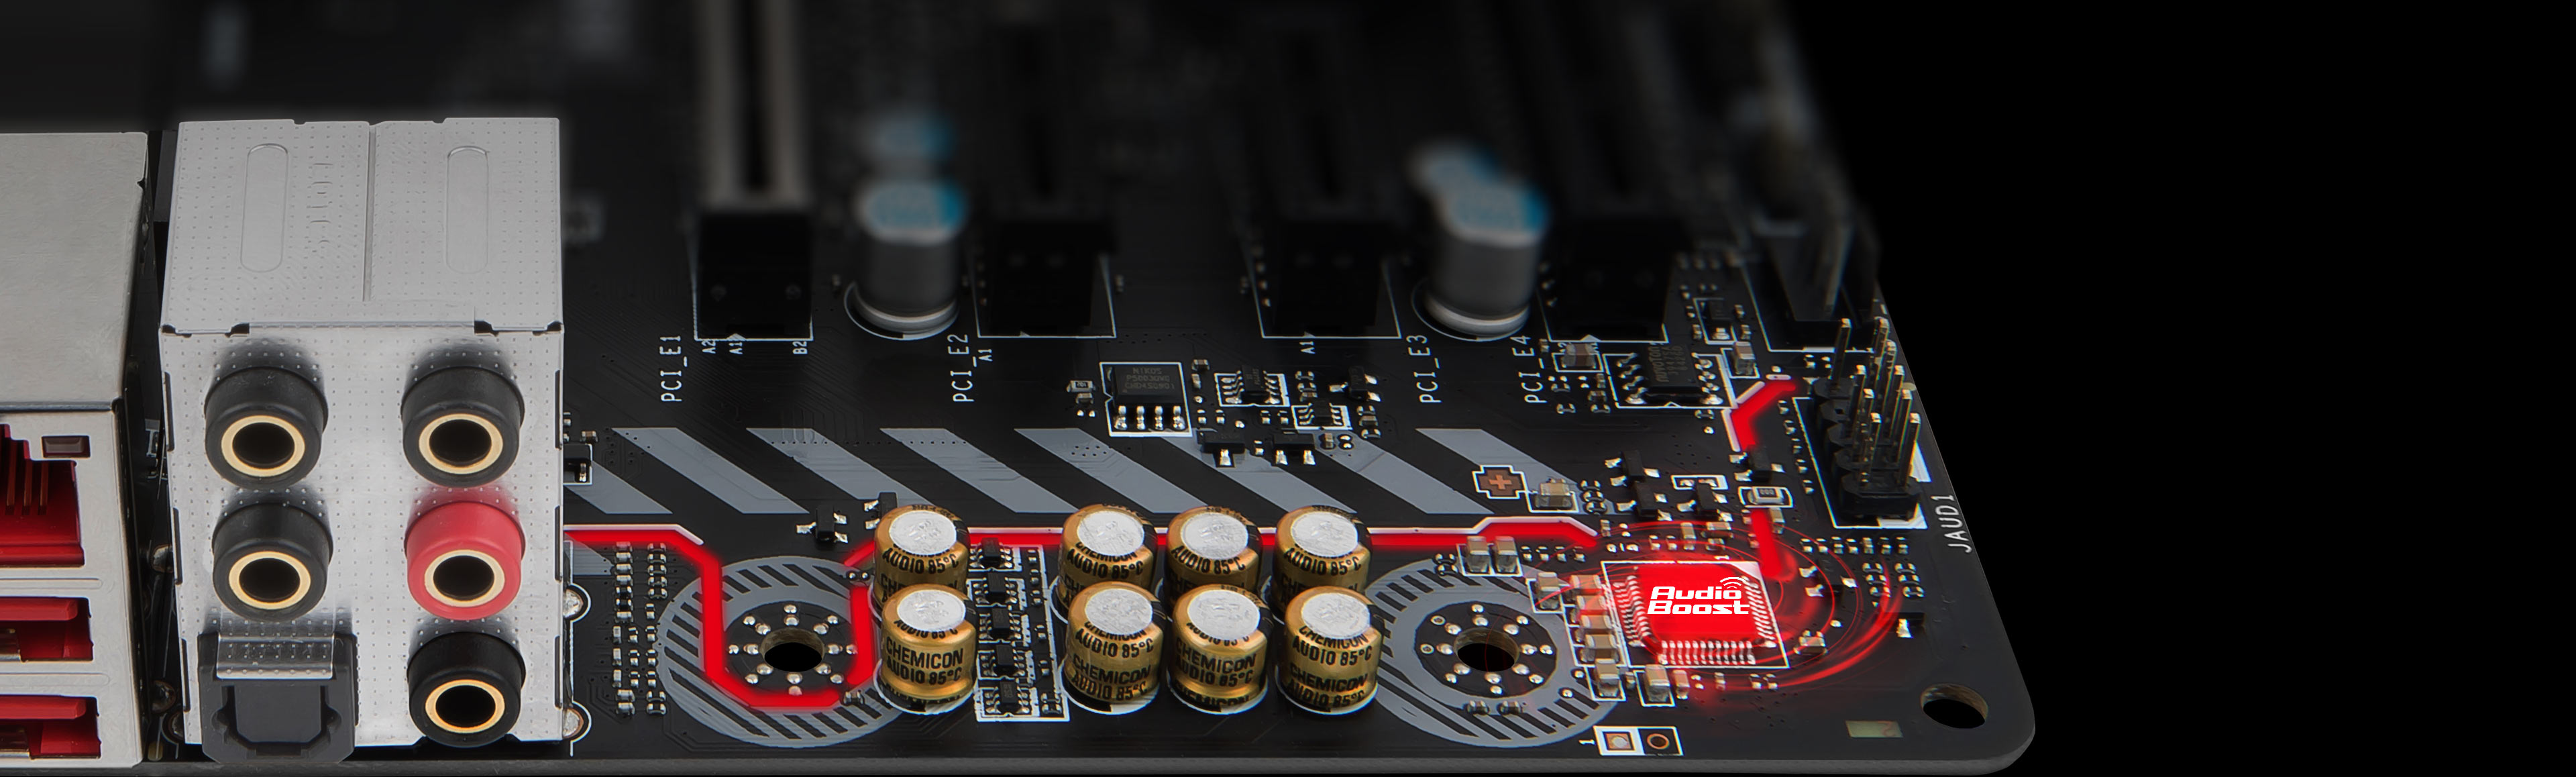 B350m Mortar Motherboard The World Leader In Design Simple Audio Amplifier 2800w Circuit Diagram Nonstopfree Electronic